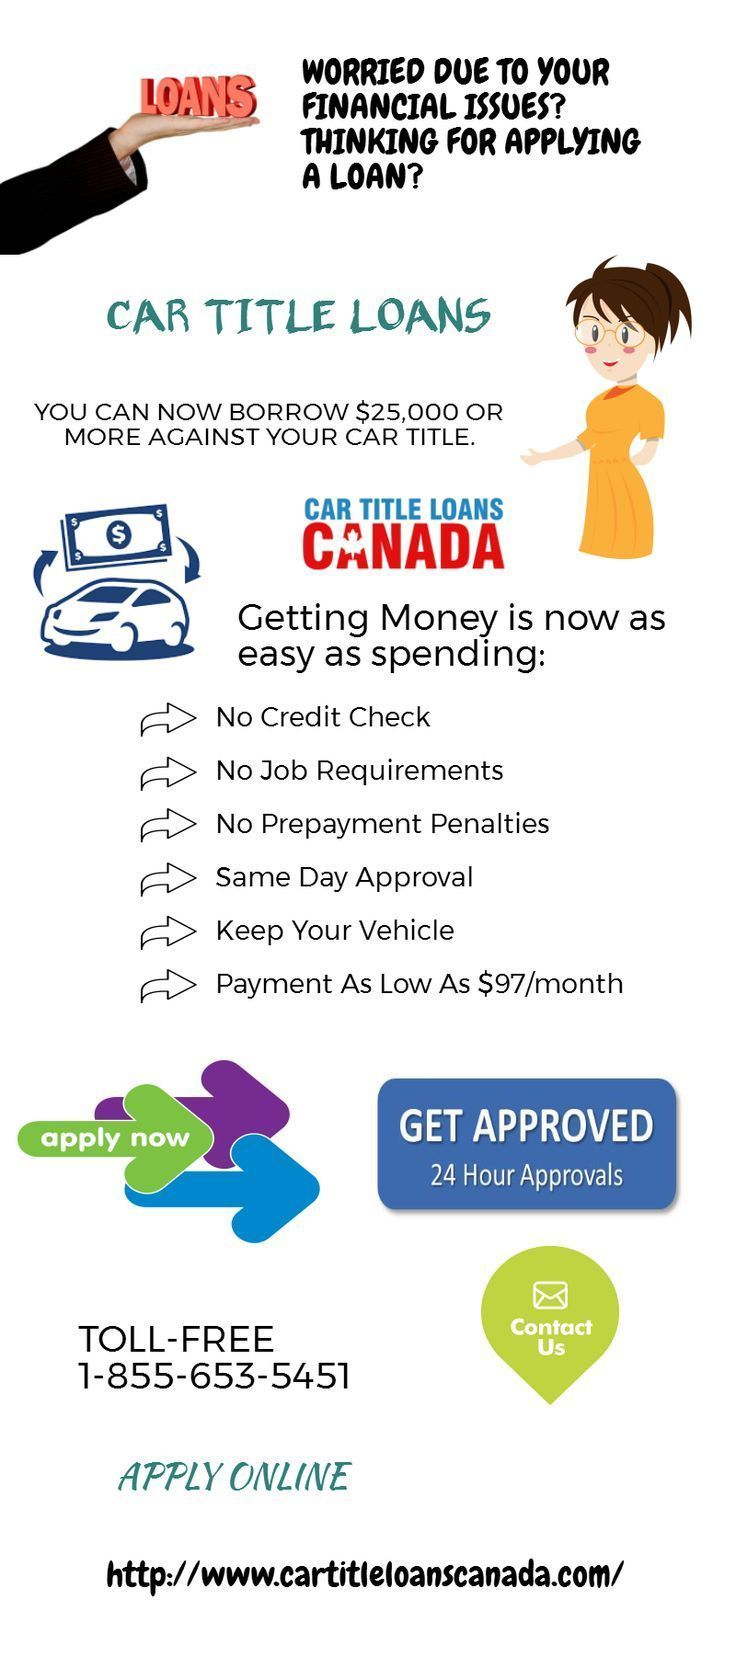 Car Title Loans Canada Is Providing Quick And Easy Auto Title Loans Apply Today Car Title How To Apply Loan